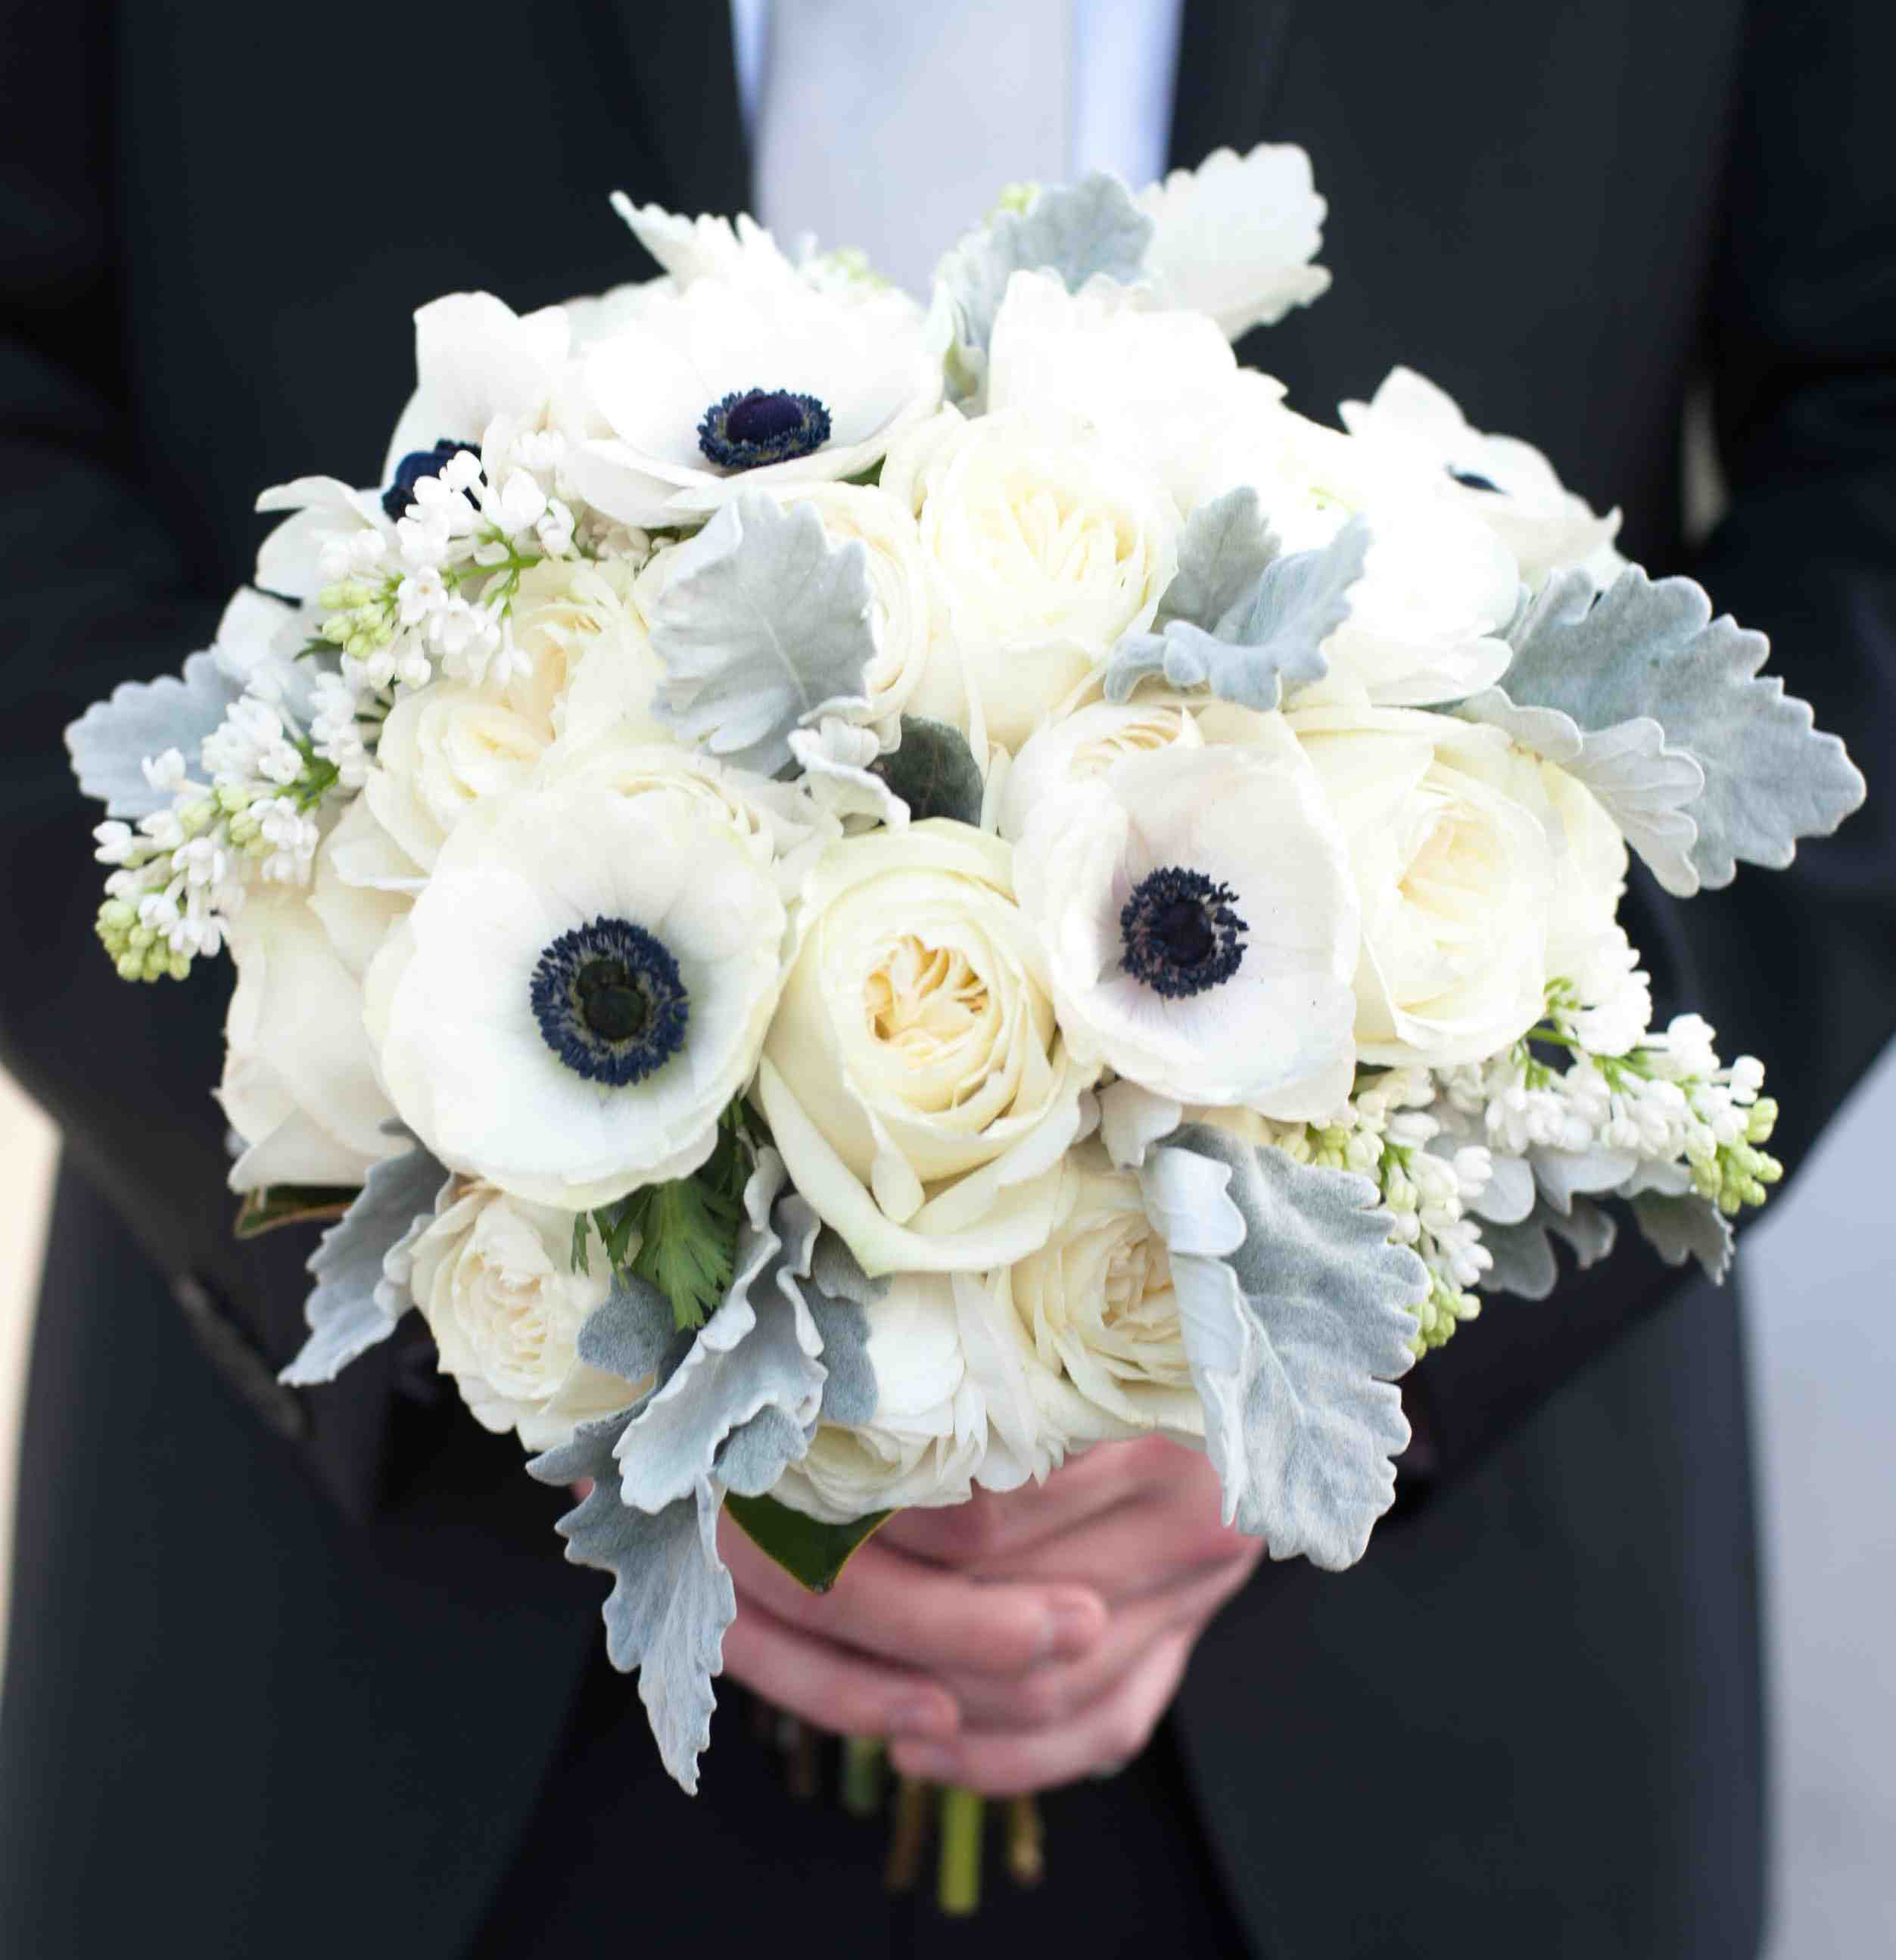 anemone bouquets wedding photo - 1